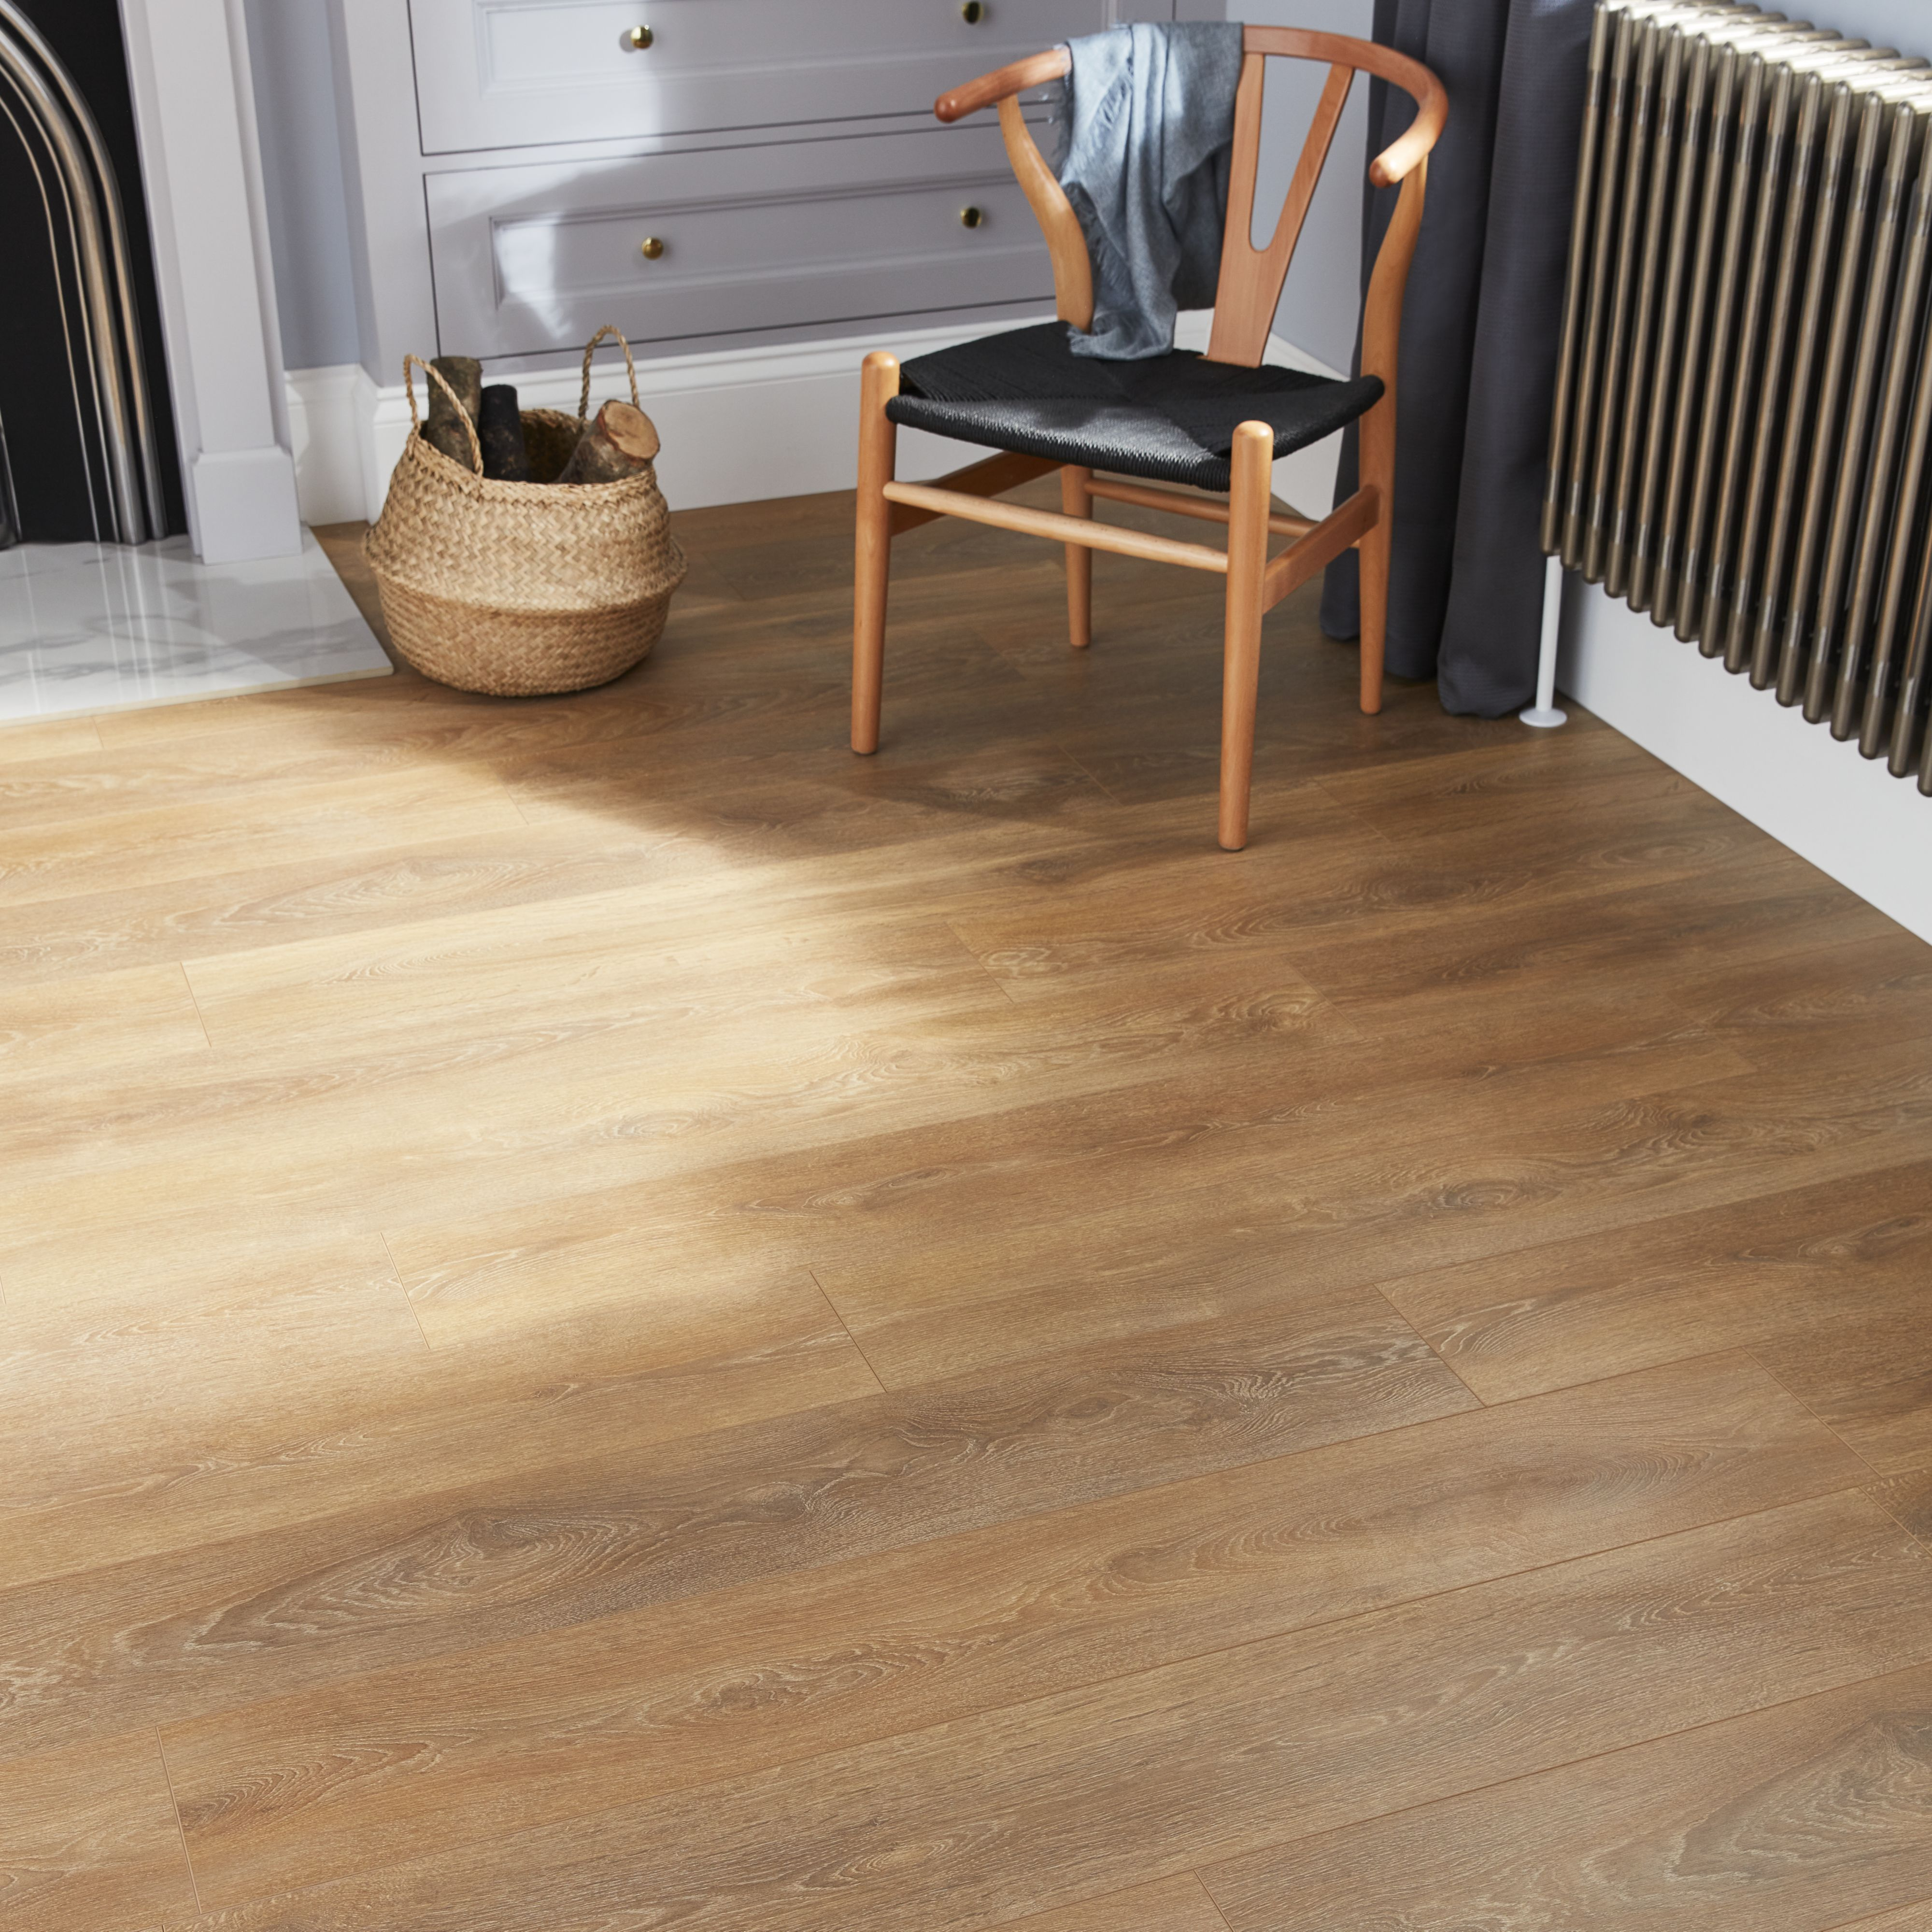 Goodhome Mossley Natural Oak Effect Laminate Flooring 1 73m Pack In 2020 Flooring Laminate Flooring Solid Wood Design